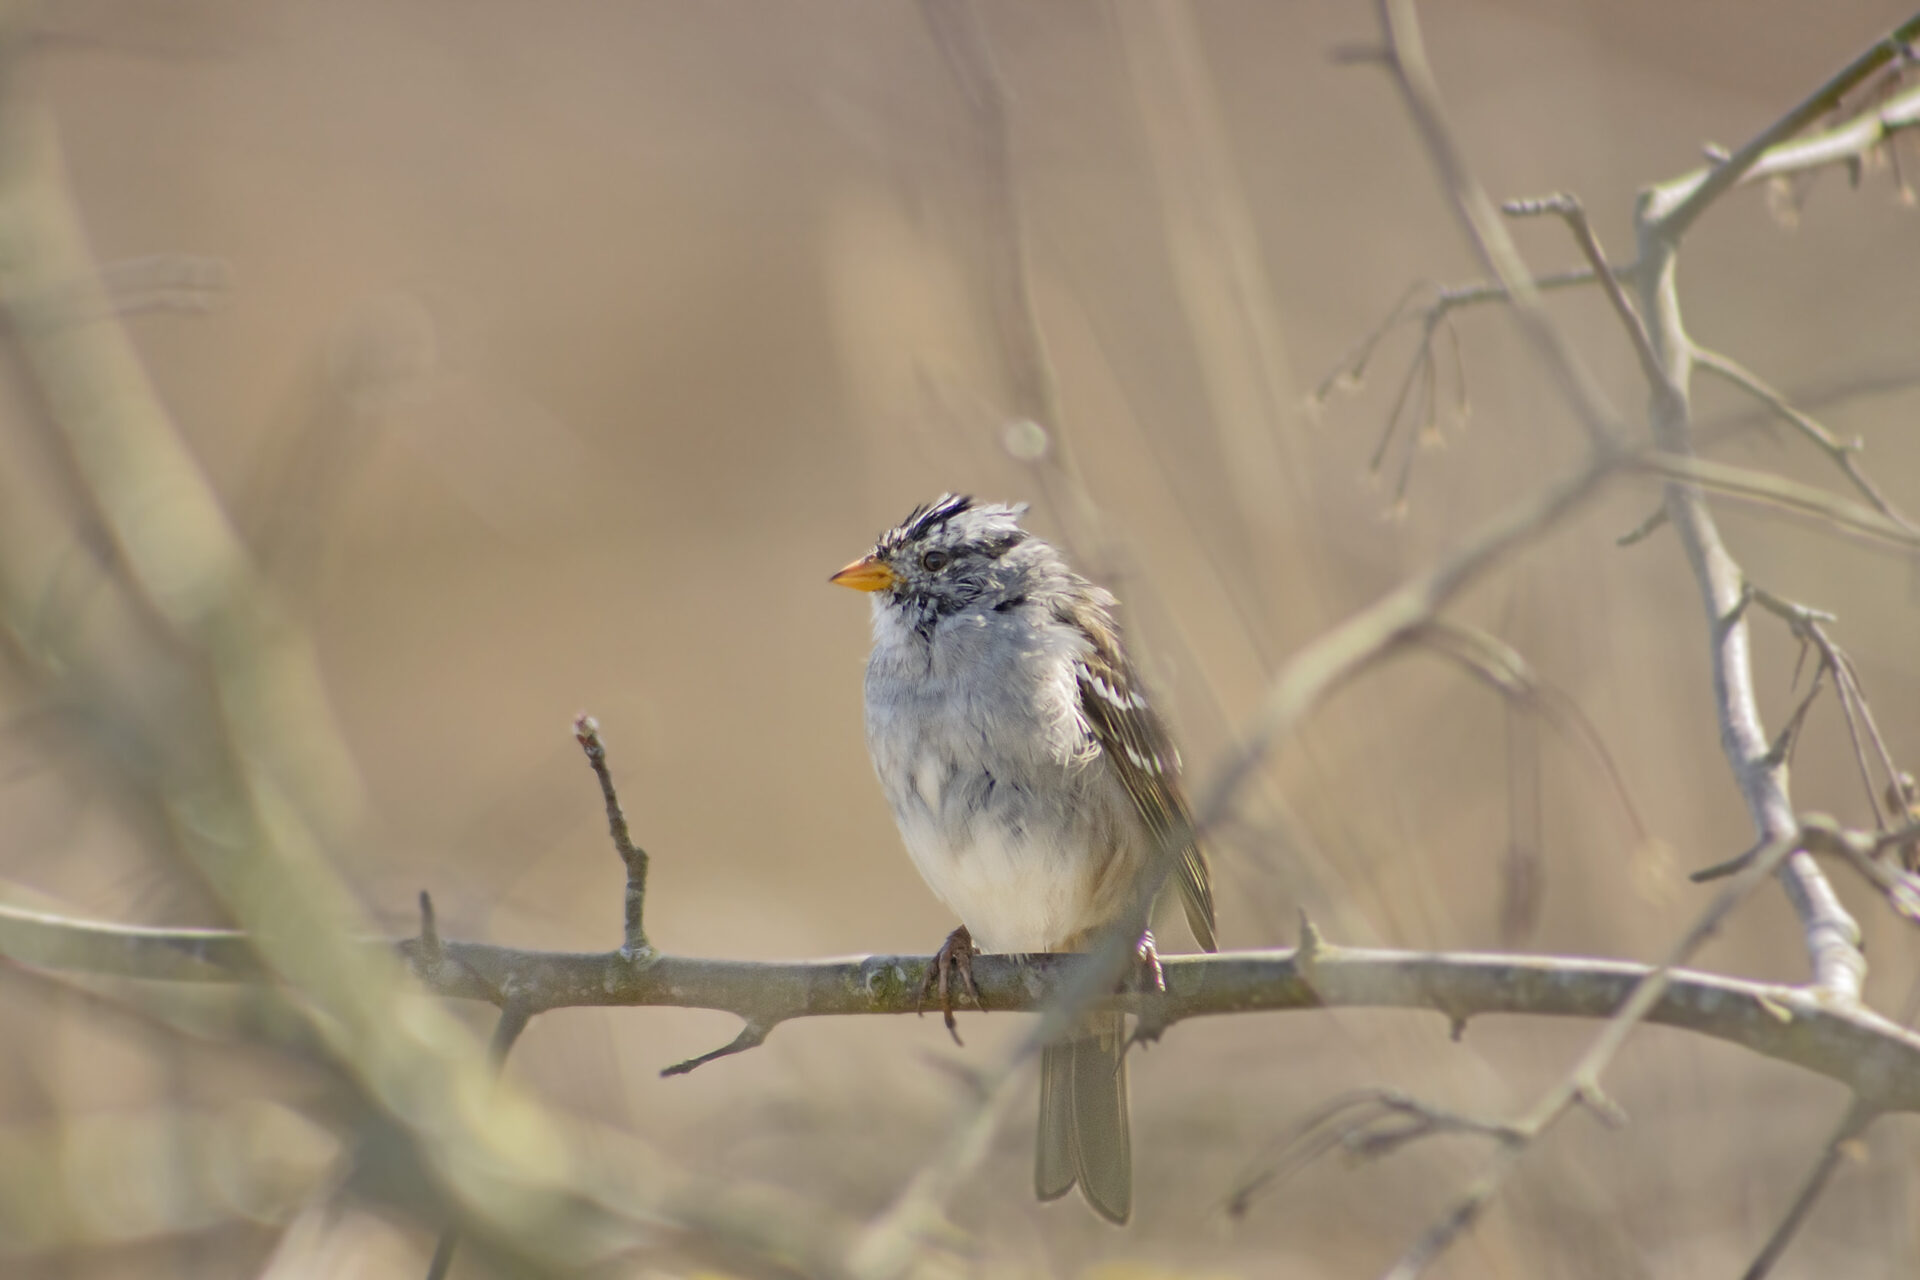 White Crowned Sparrow, Boundary Bay, April 5, 2021